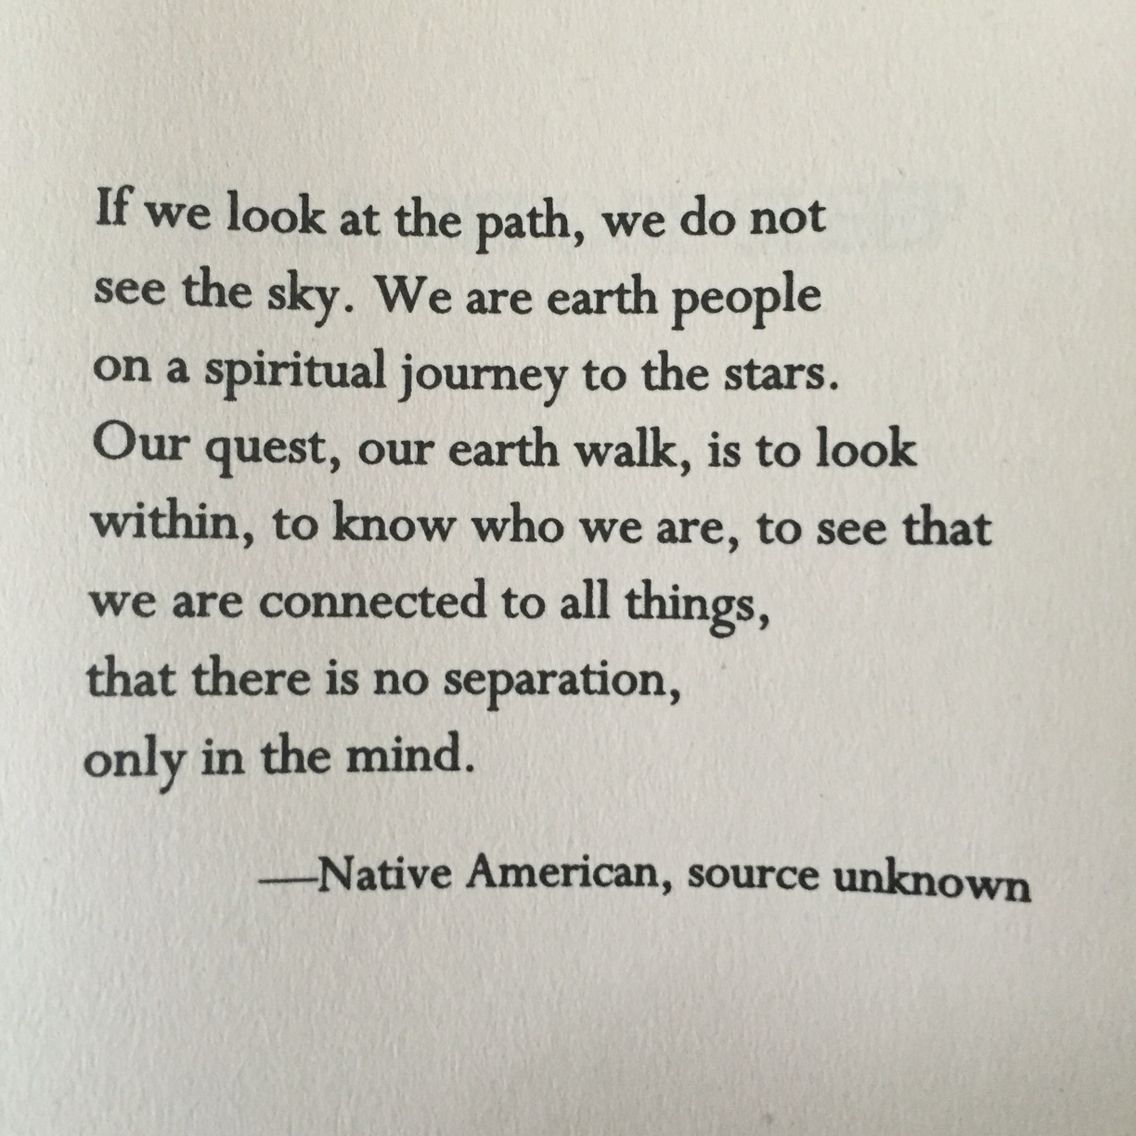 Our Quest Our Earth Walk Is To Look Within Native